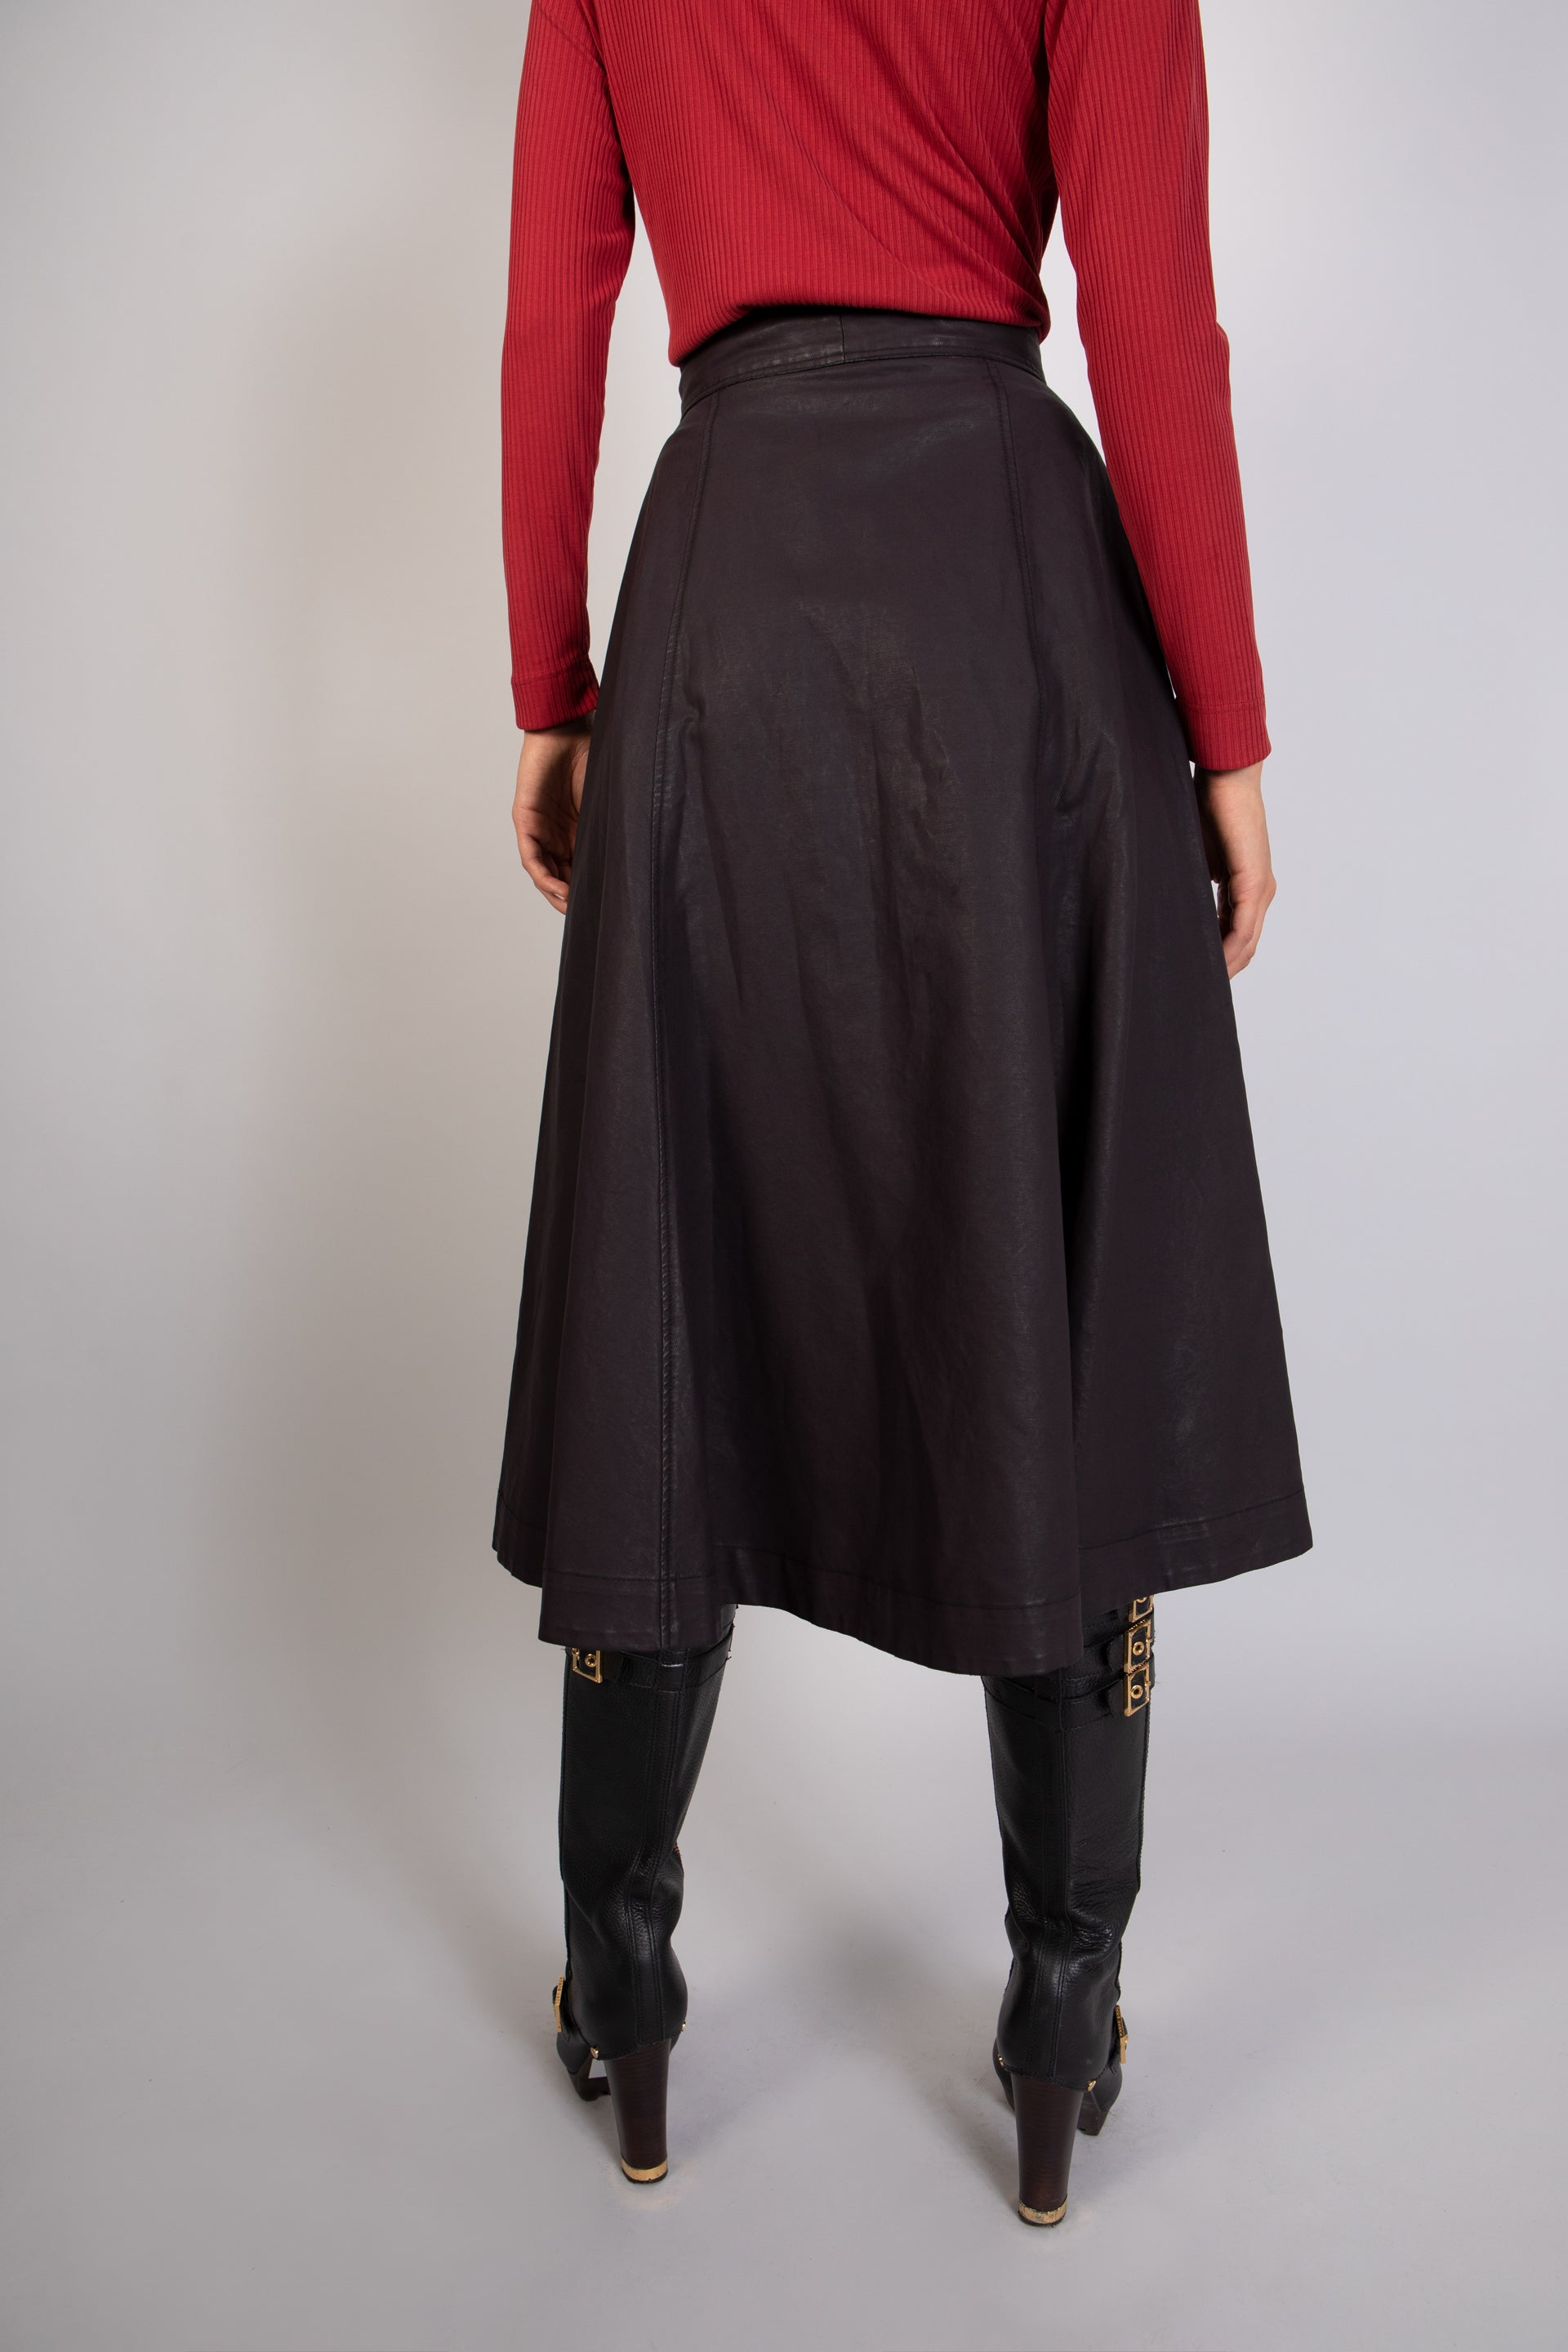 LEGEND black skirt - heroic-online